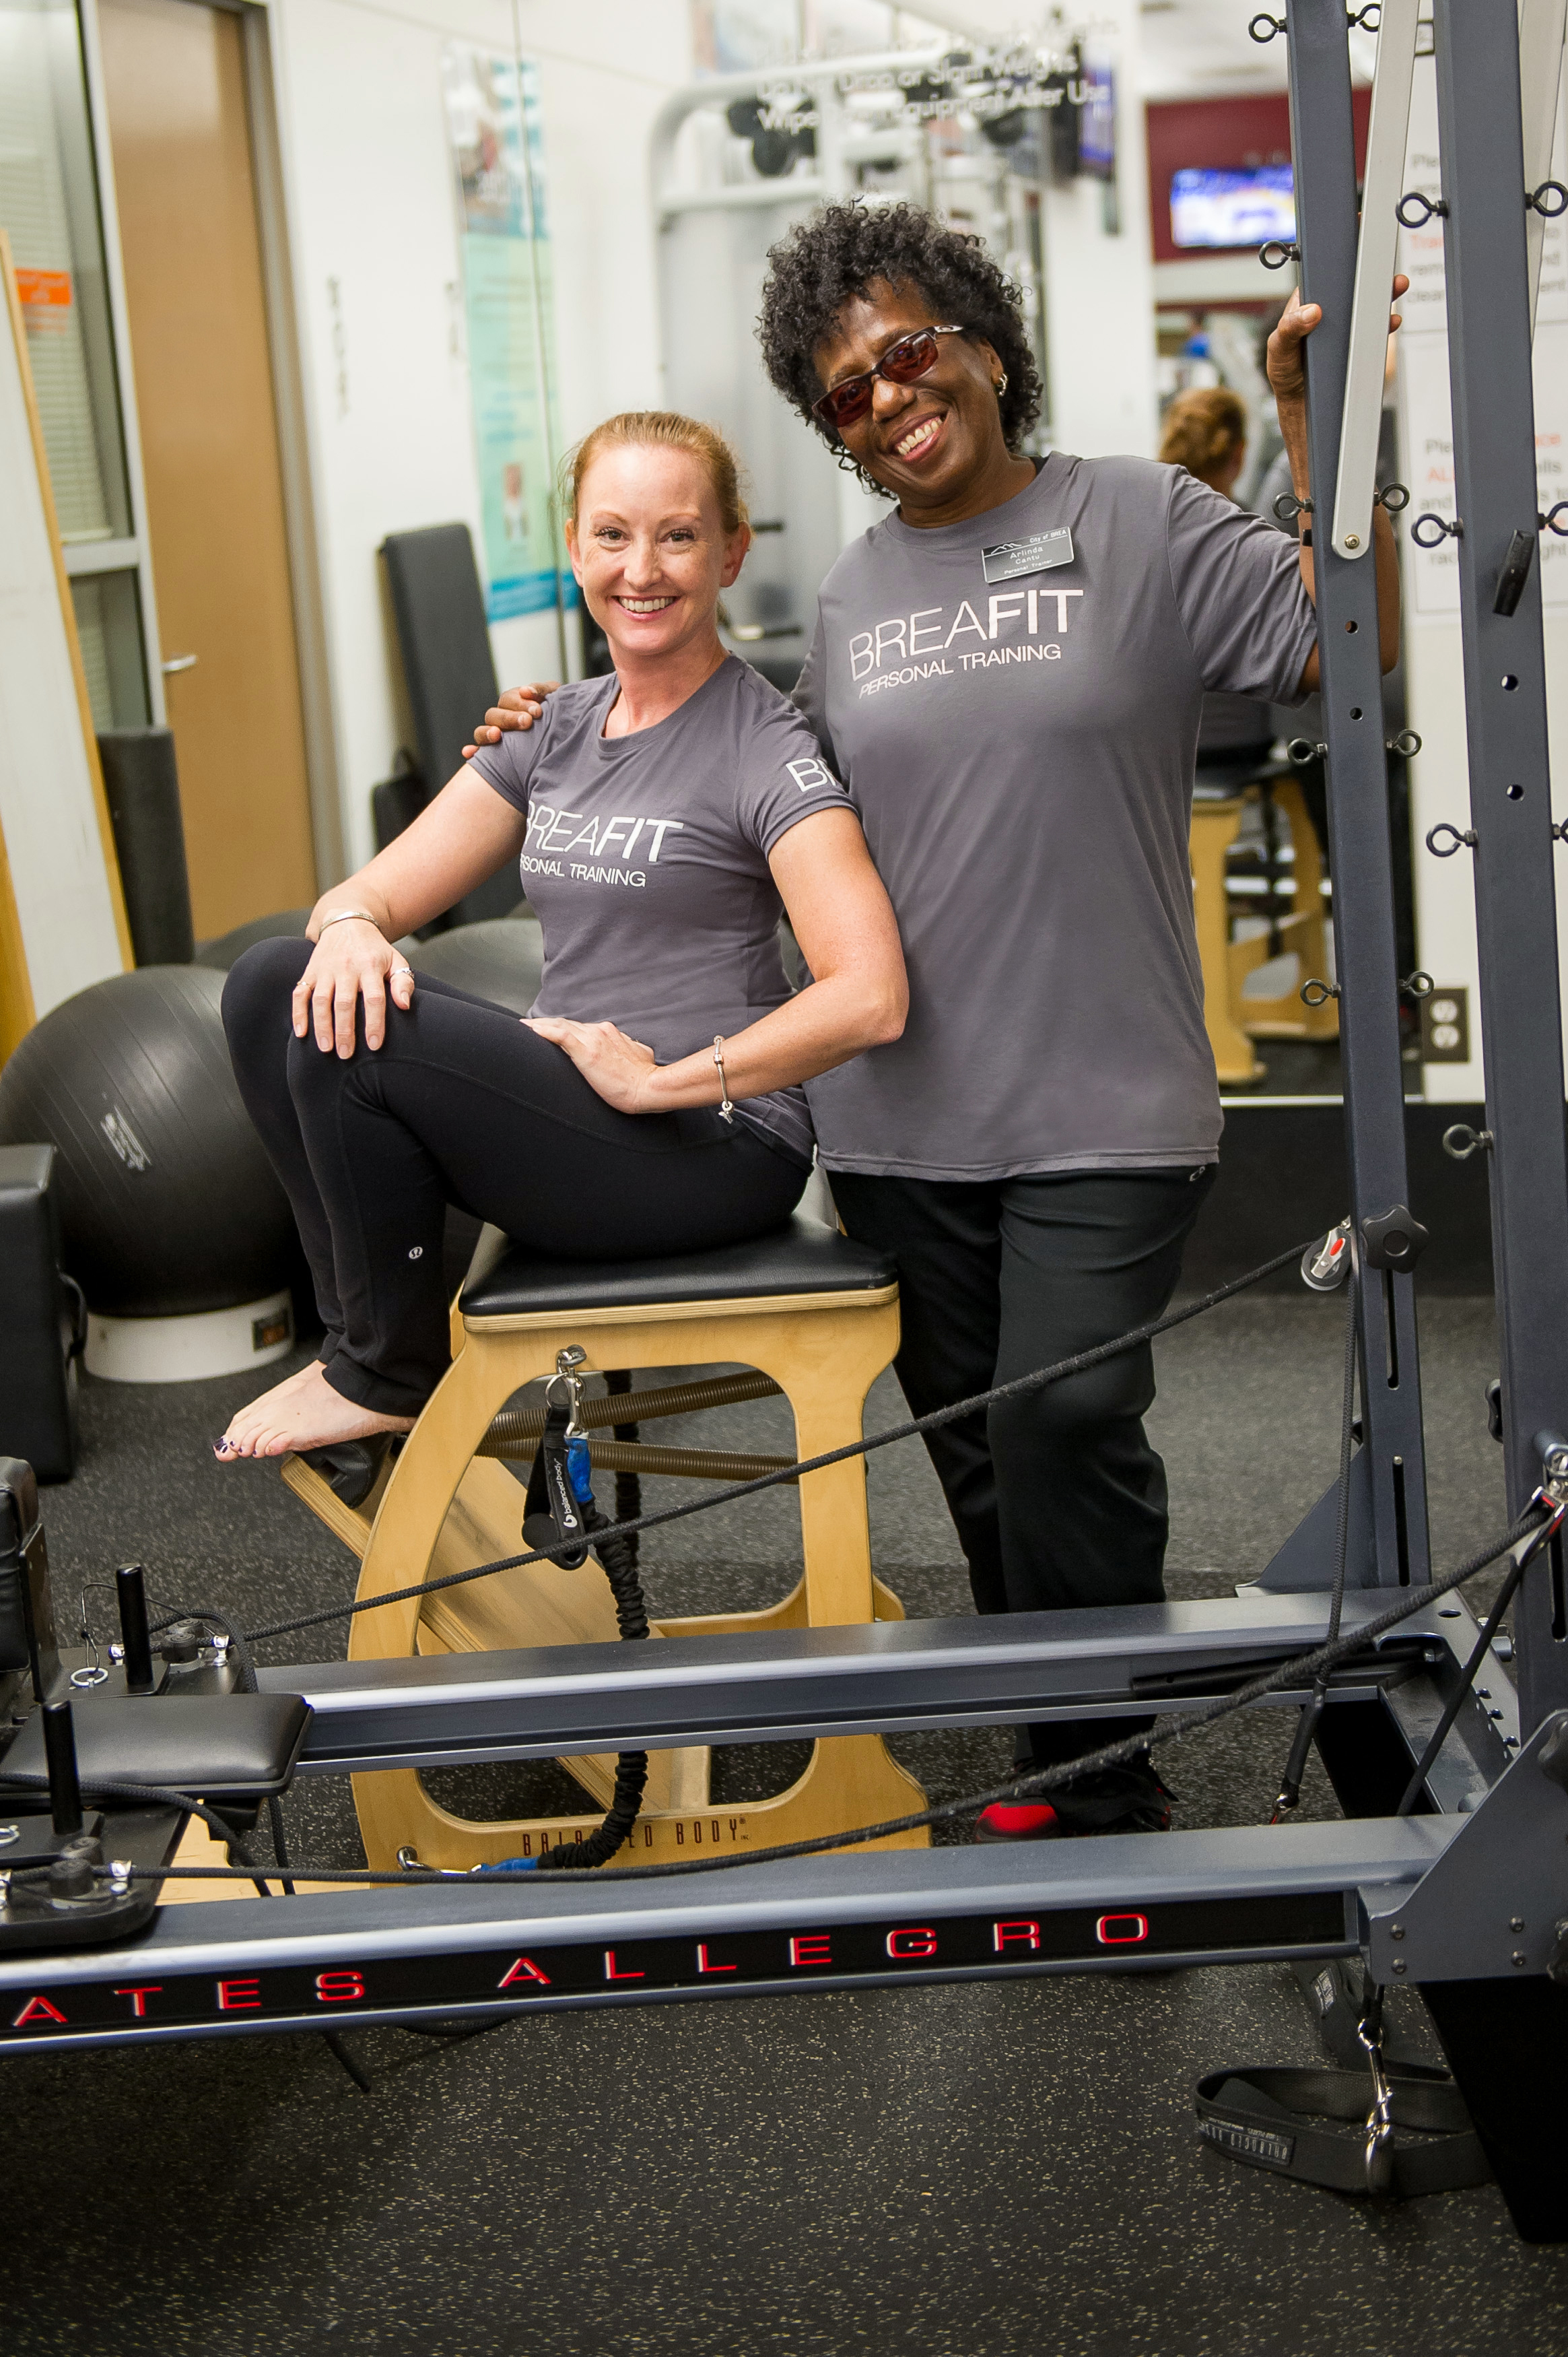 Pilates Reformer Trainers